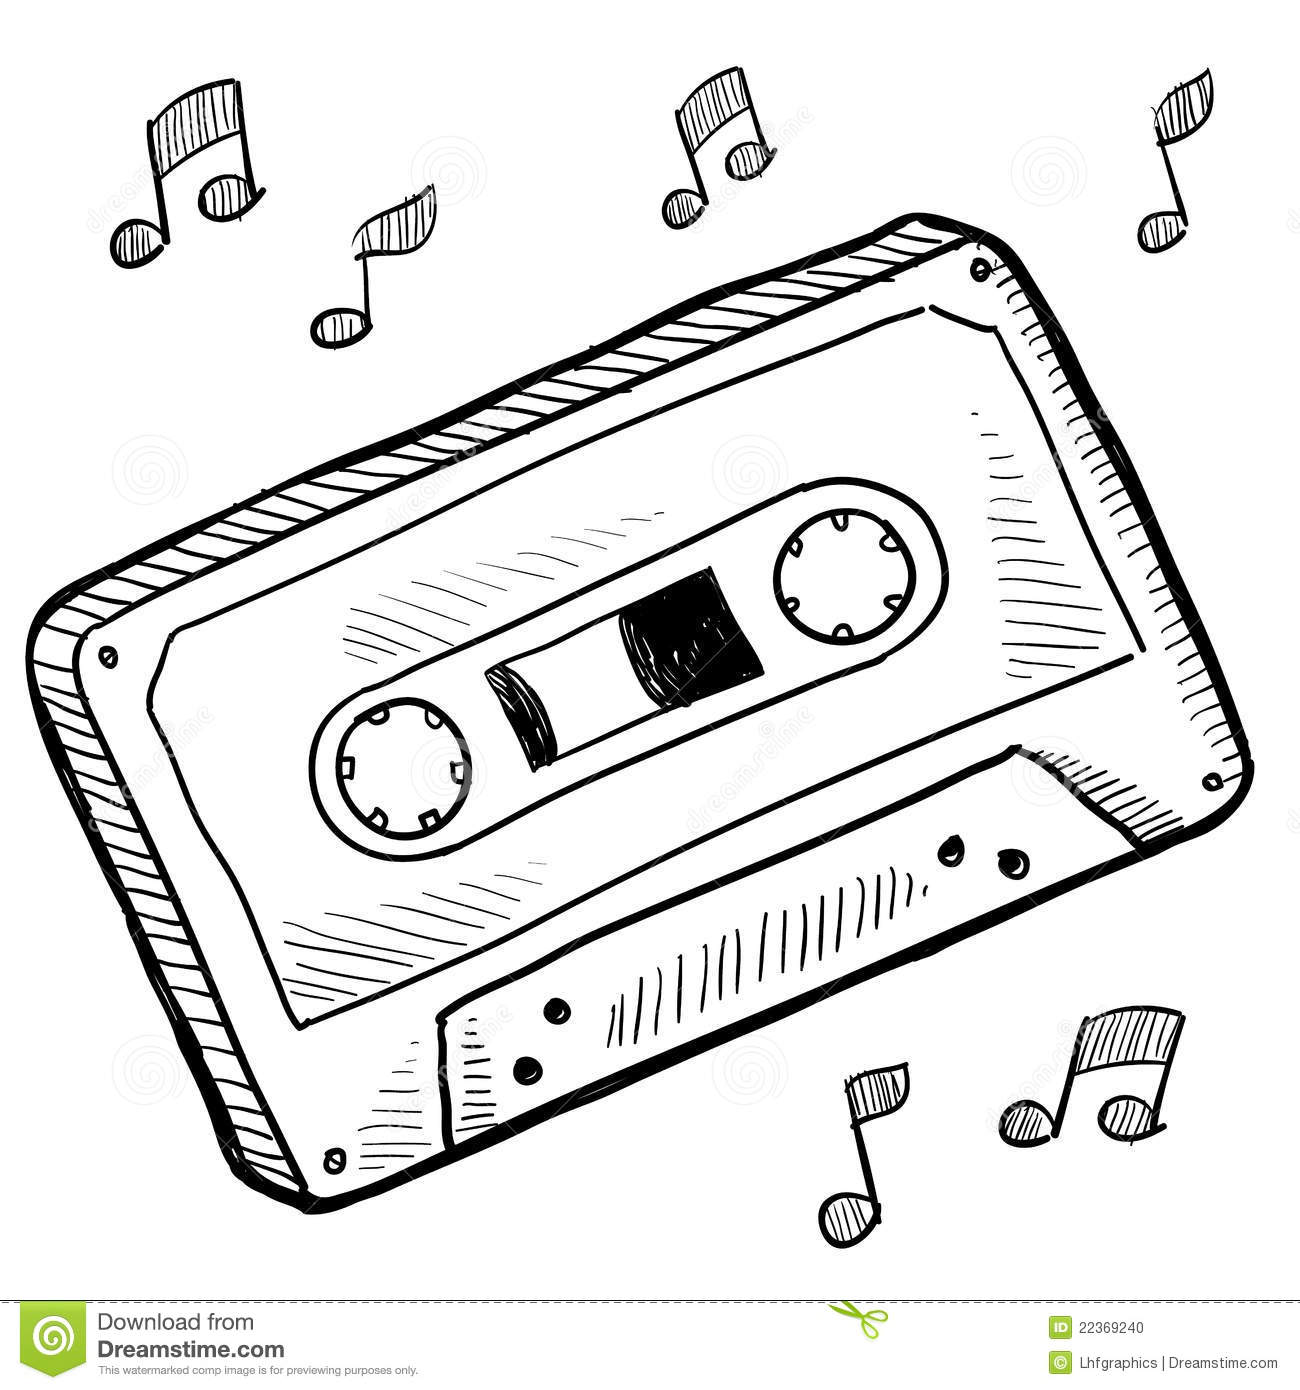 drawings of tapes clipart clipart suggest. Black Bedroom Furniture Sets. Home Design Ideas